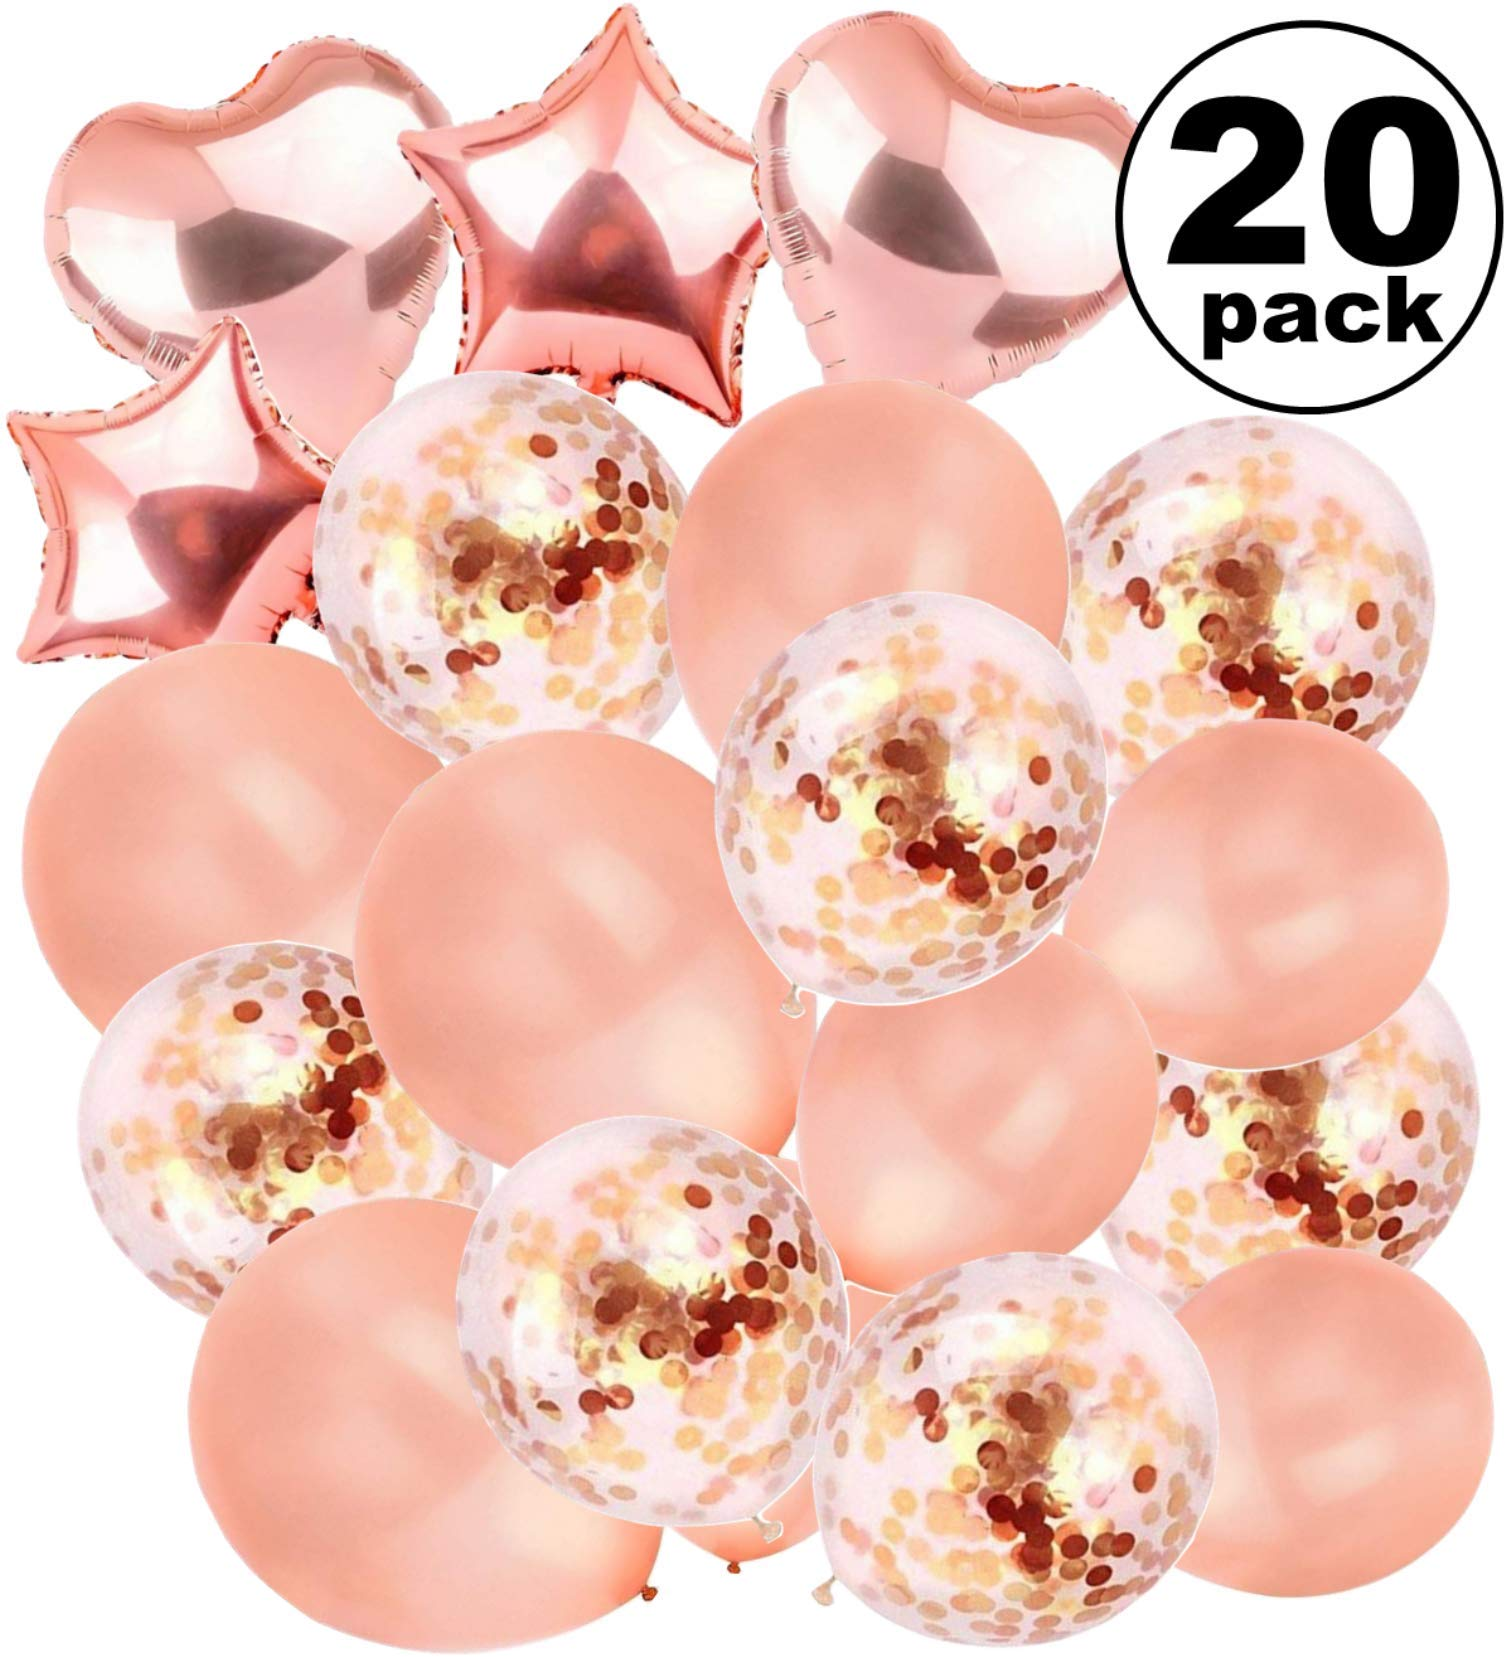 Large Rose Gold Balloons Decorations - 18 Inch Confetti Latex Pack 20 Filled Metallic Great Love | Bridal Baby Shower, Birthday, Wedding, Engagement, Prom, Graduation Supplies, Bachelorette, Sweet 16